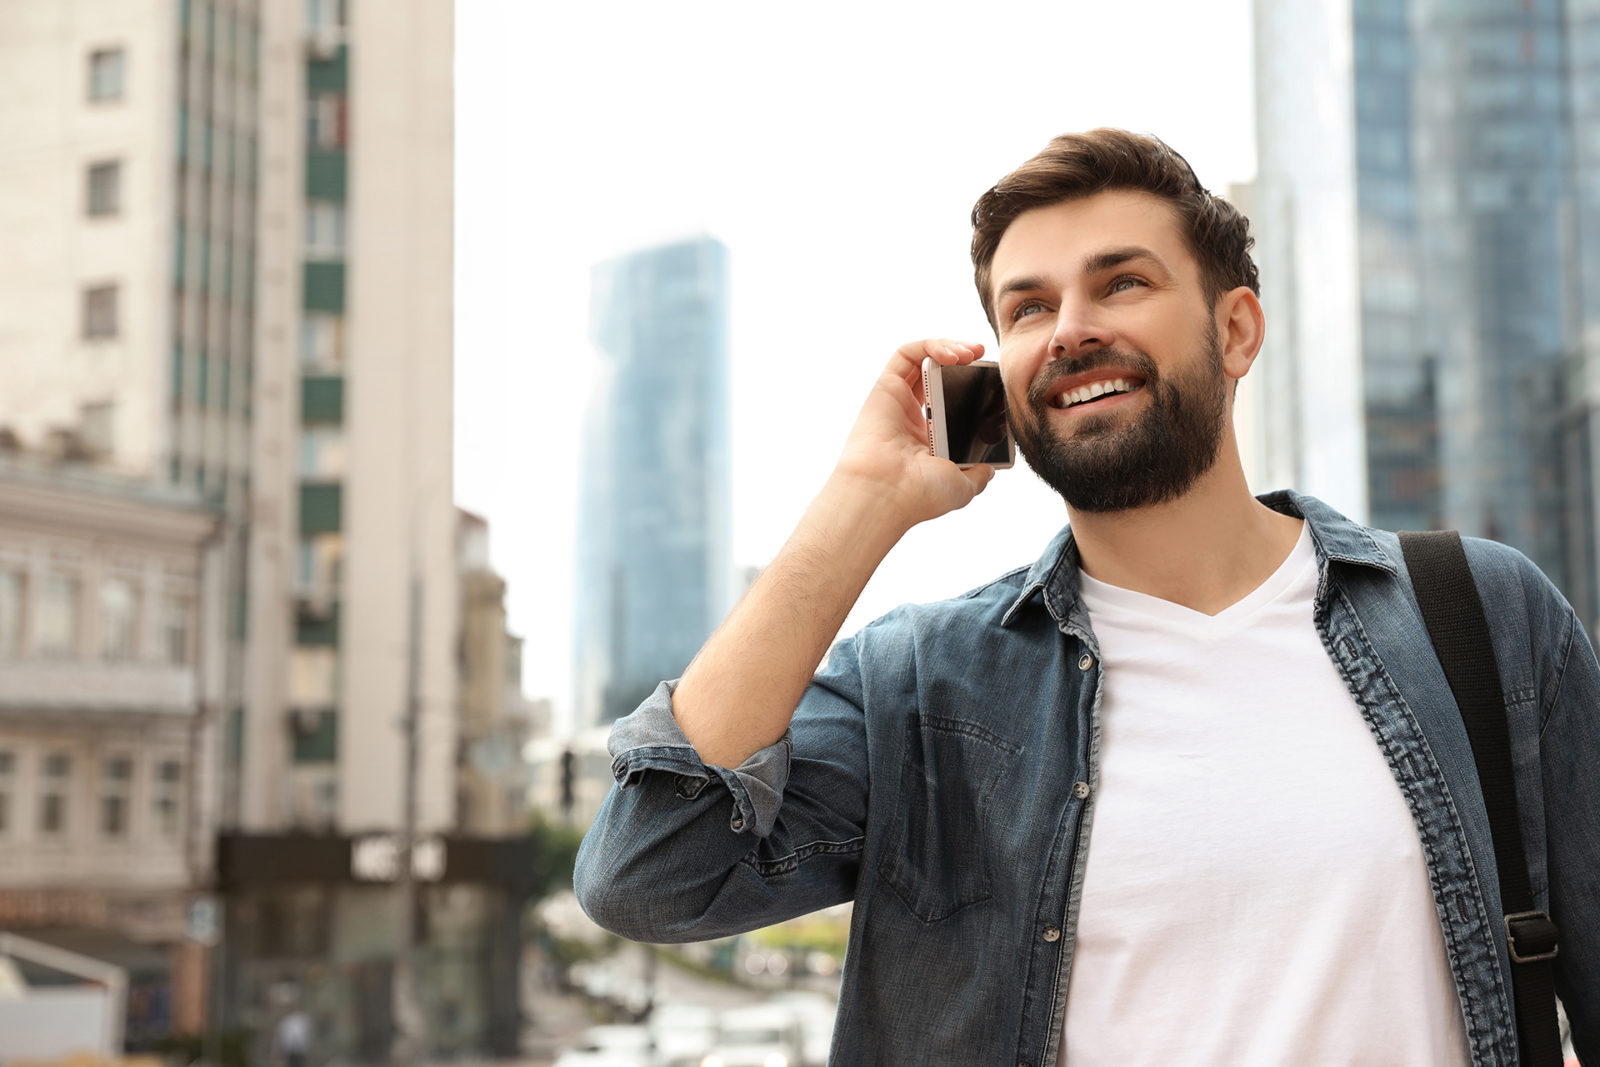 Handsome man talking on phone in modern city